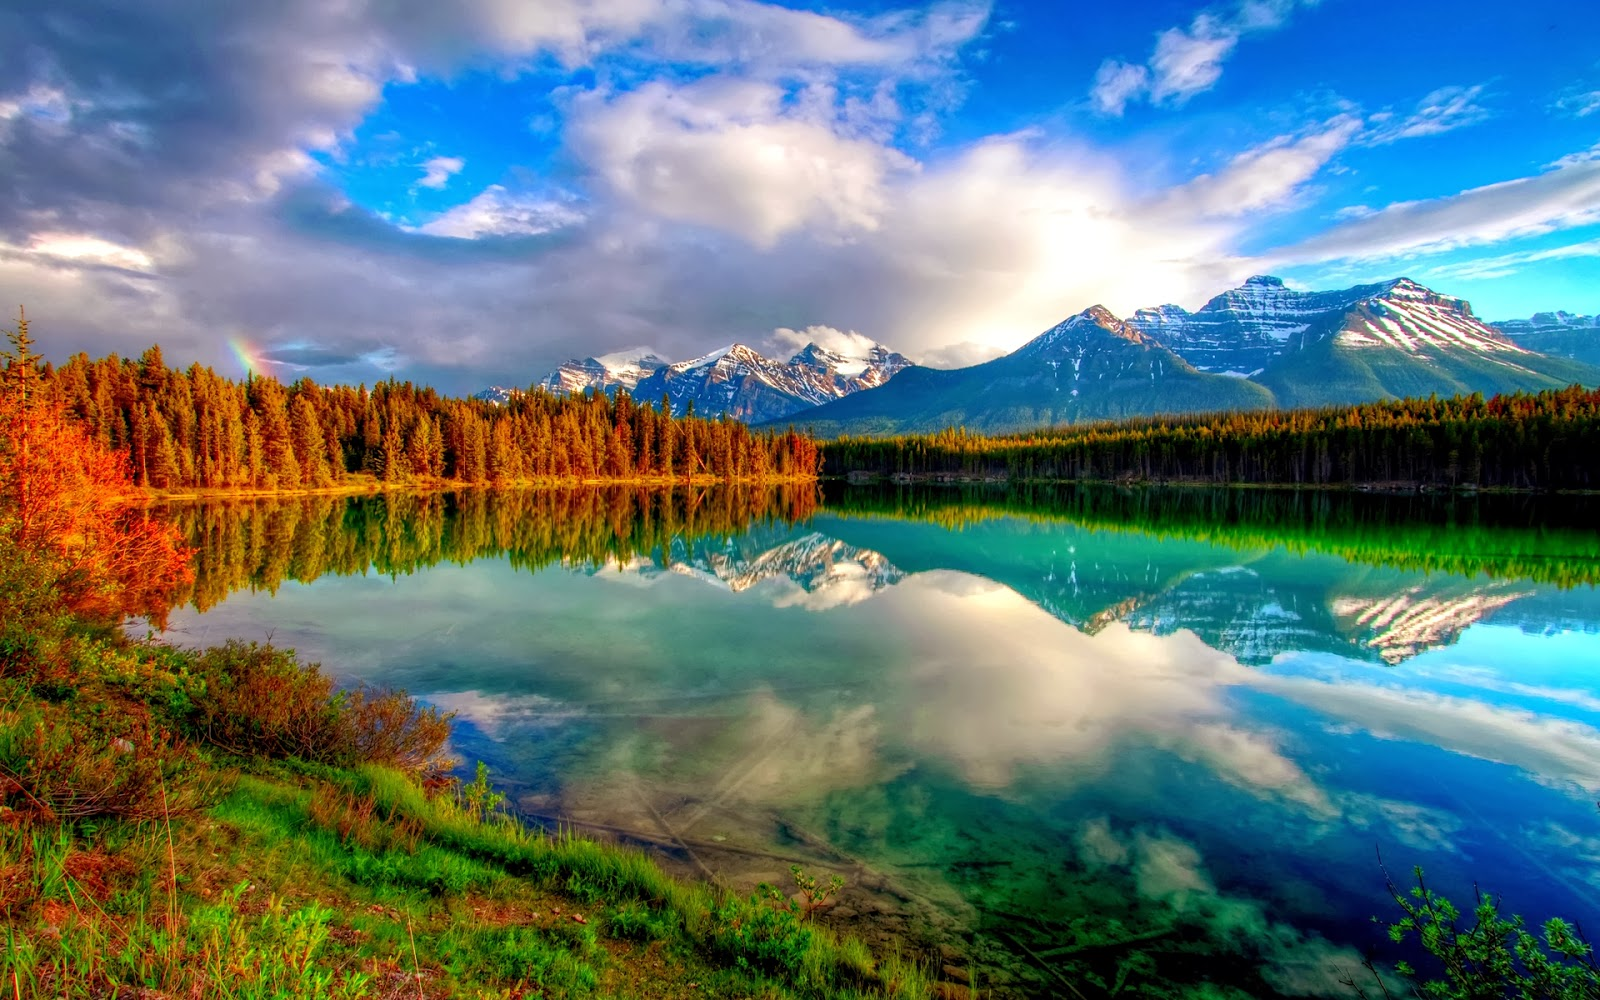 WOW: Beautiful Mountain Lakes Wallpaper, Download Lakes HD